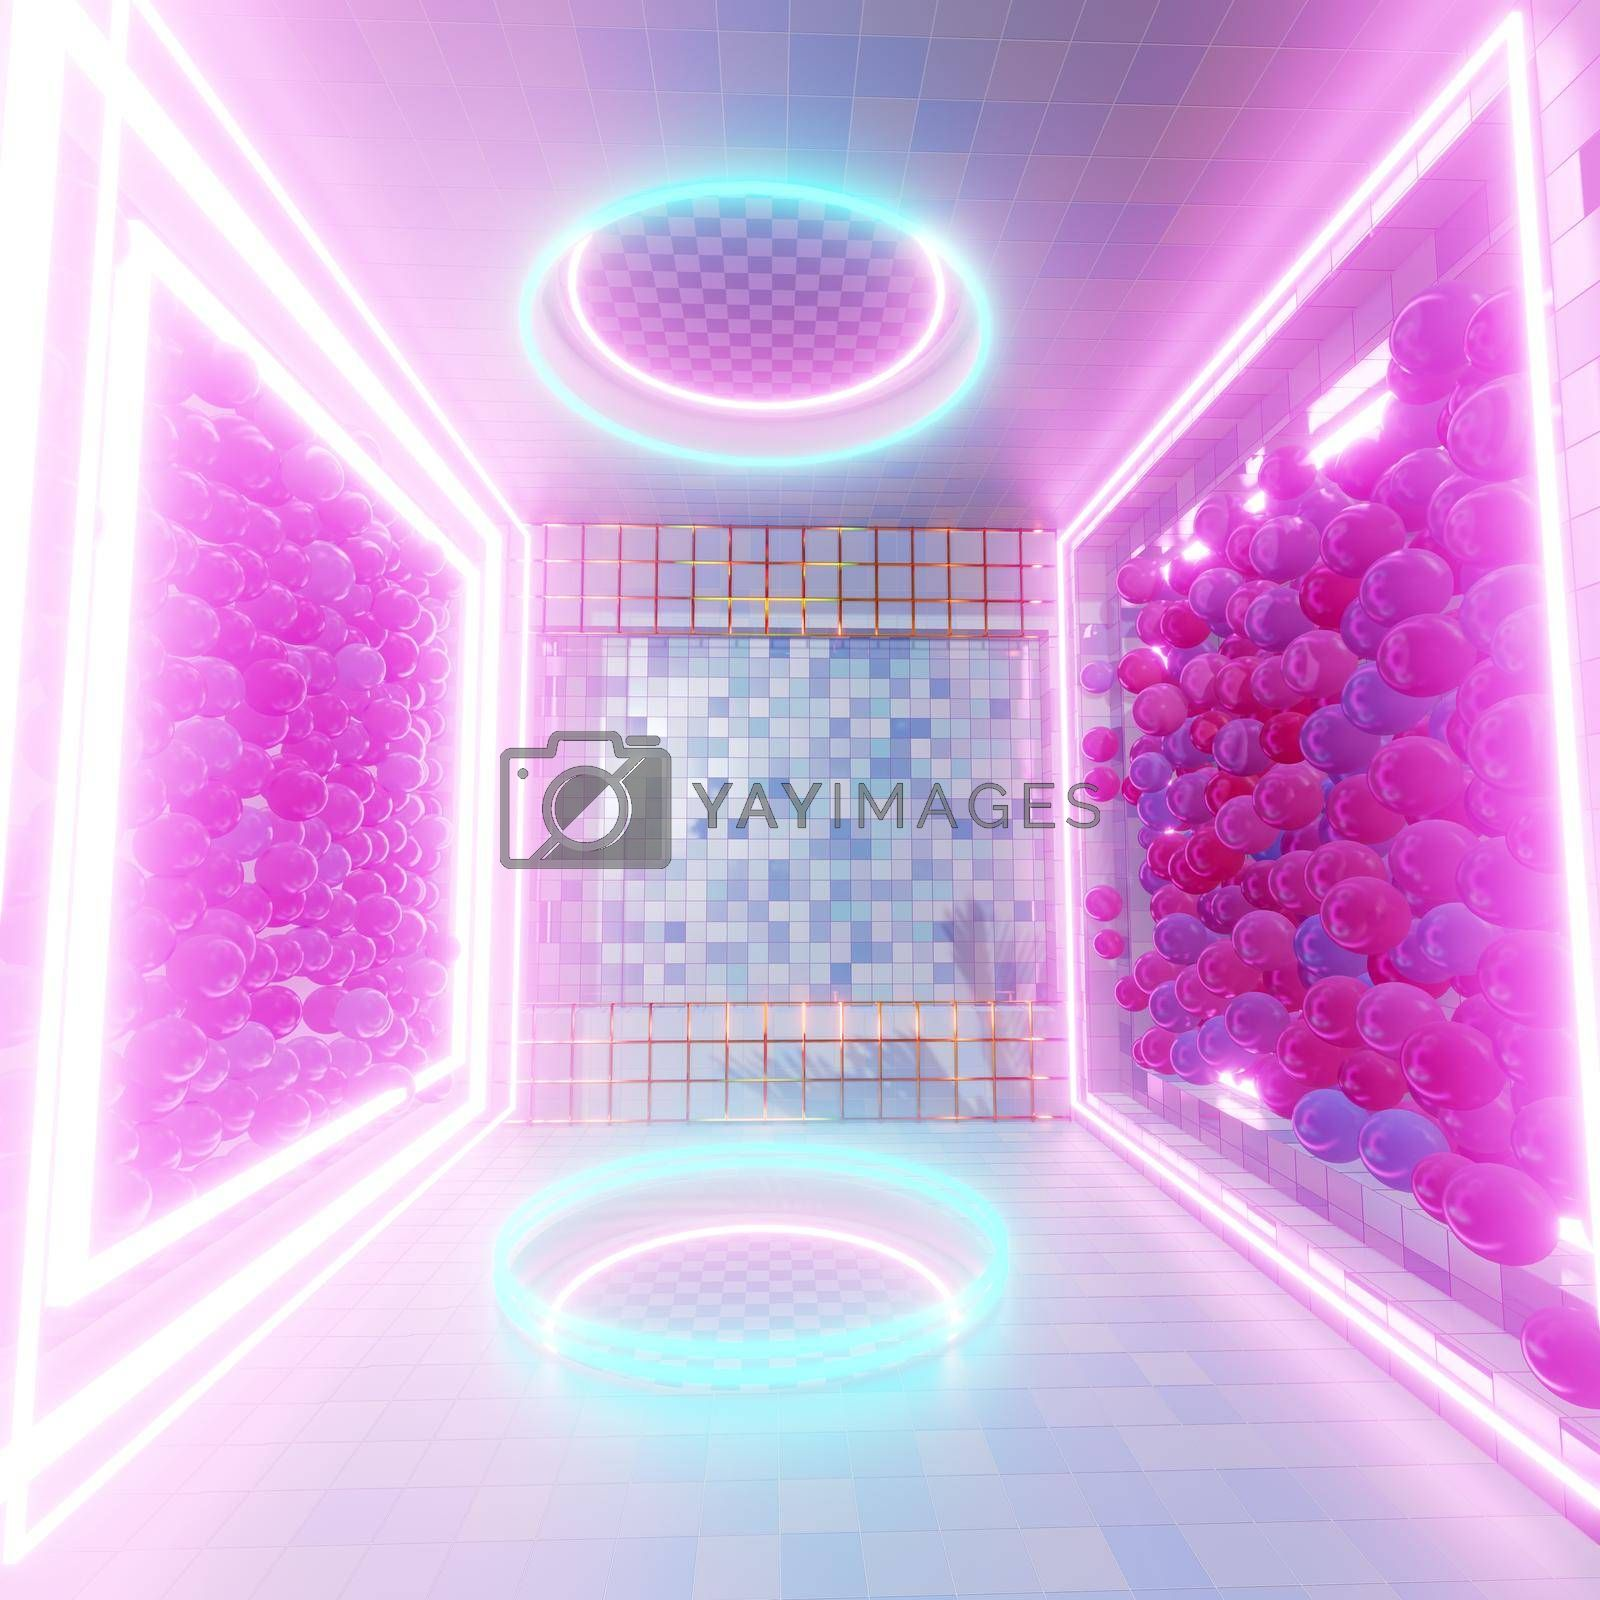 3D illustration Background for advertising and wallpaper in 90s retro and sci fi pop art scene. 3D rendering in decorative concept.